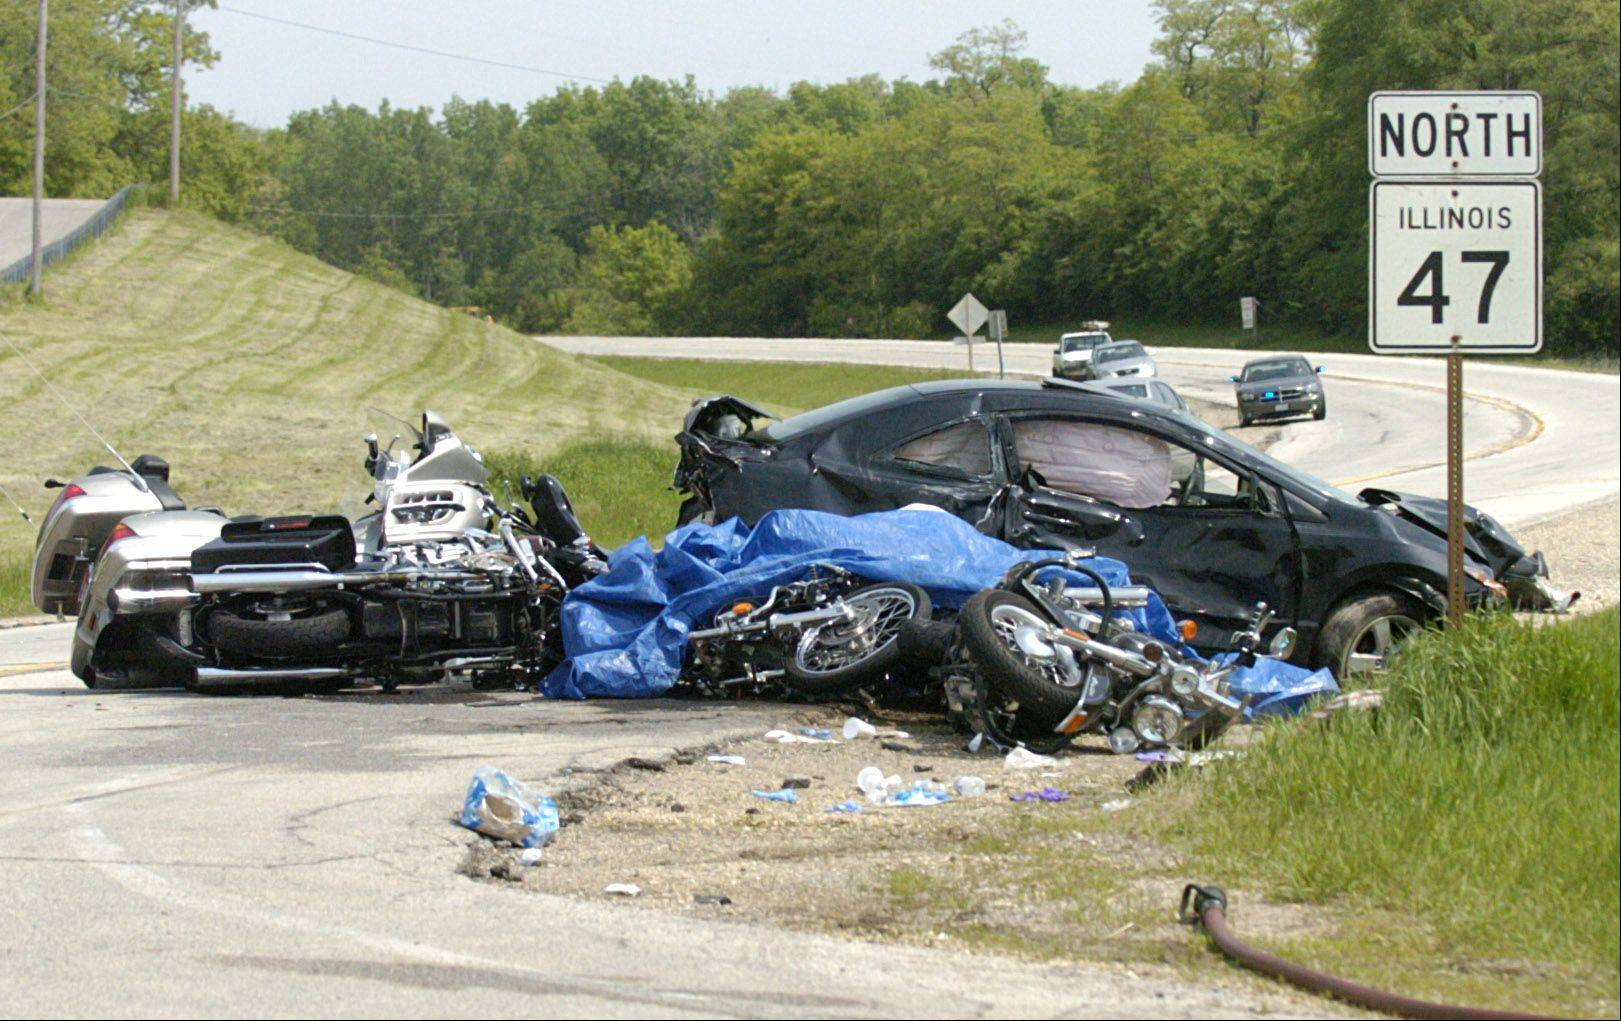 The May 2009 double fatal accident that also injured 12 people was on Route 47 just north of Smith Road between Elburn and Sugar Grove. Alia Bernard of Aurora is serving a seven-year sentence for causing the crash that also injured 12 people.